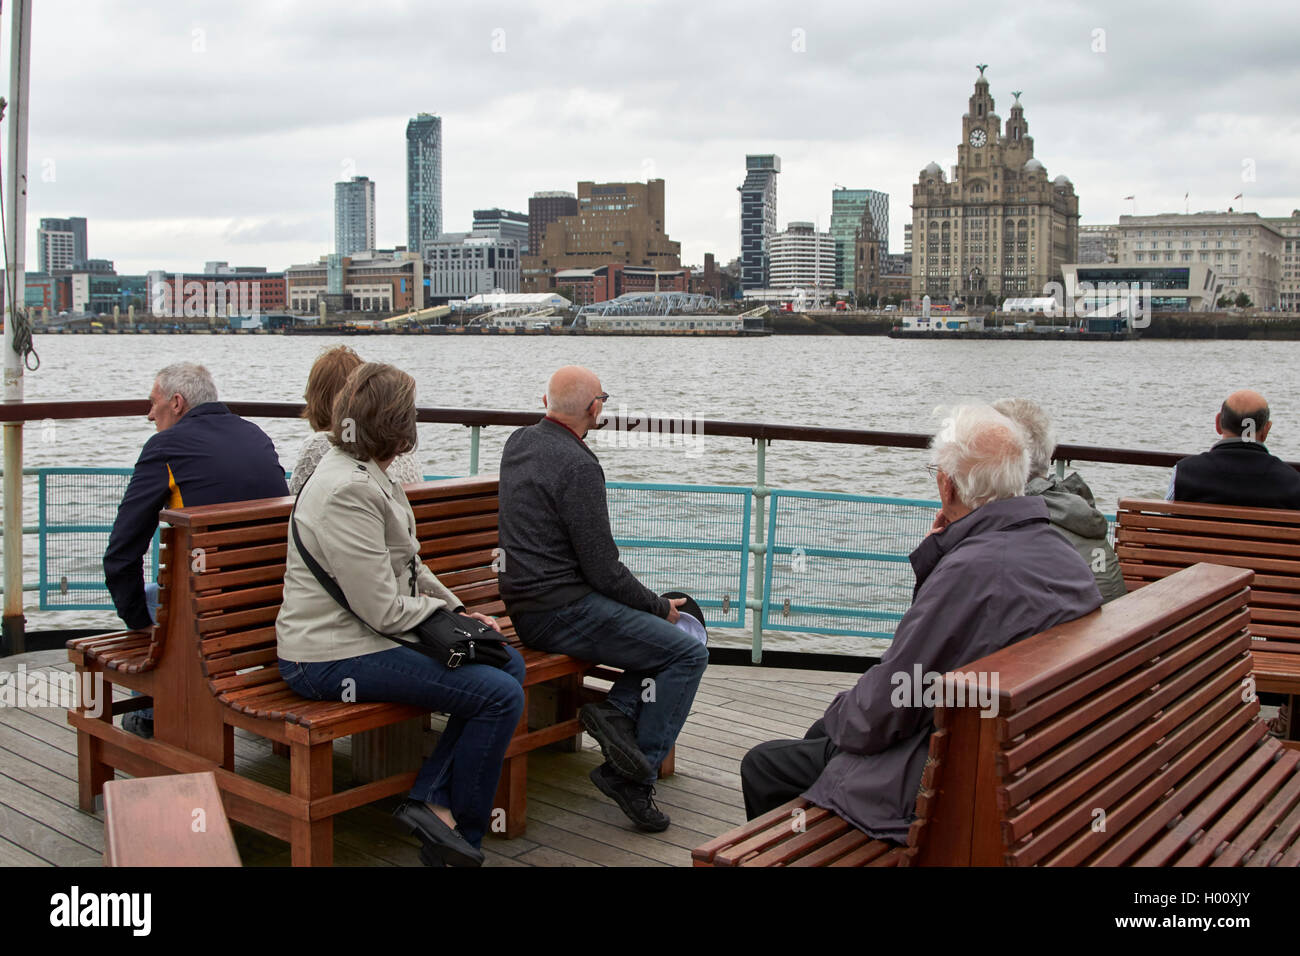 passengers on observation deck of mersey ferries ferry cross the mersey Liverpool Merseyside UK - Stock Image